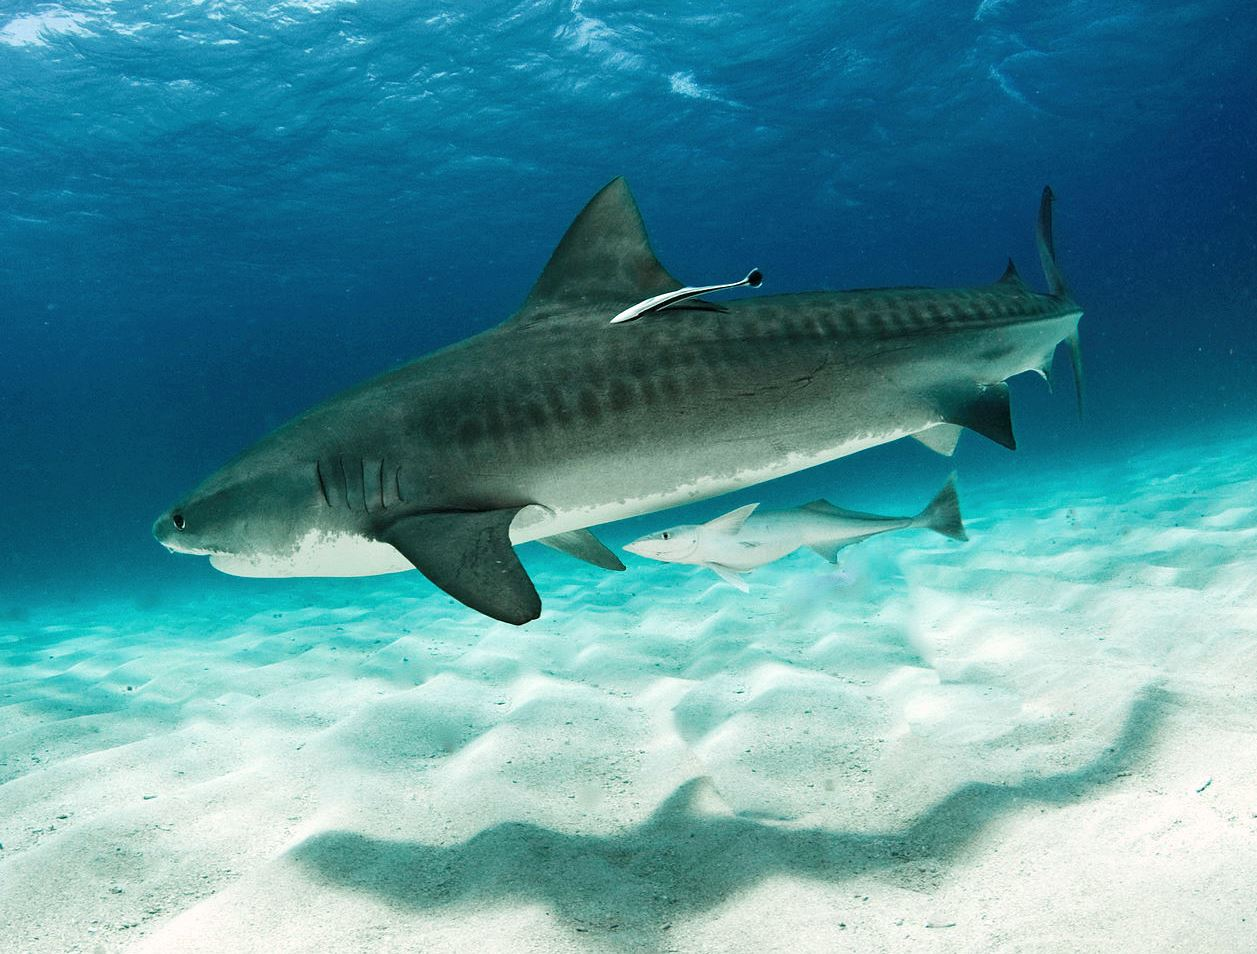 Tiger sharks, such as this one with remoras, have stripes on their sides that are most easily seen in younger sharks. Second only to white sharks in terms of the number of attacks on humans, tiger sharks actually feed on a wide range of prey, including fish, birds, seals, turtles, crustaceans, sea snakes, and smaller sharks.